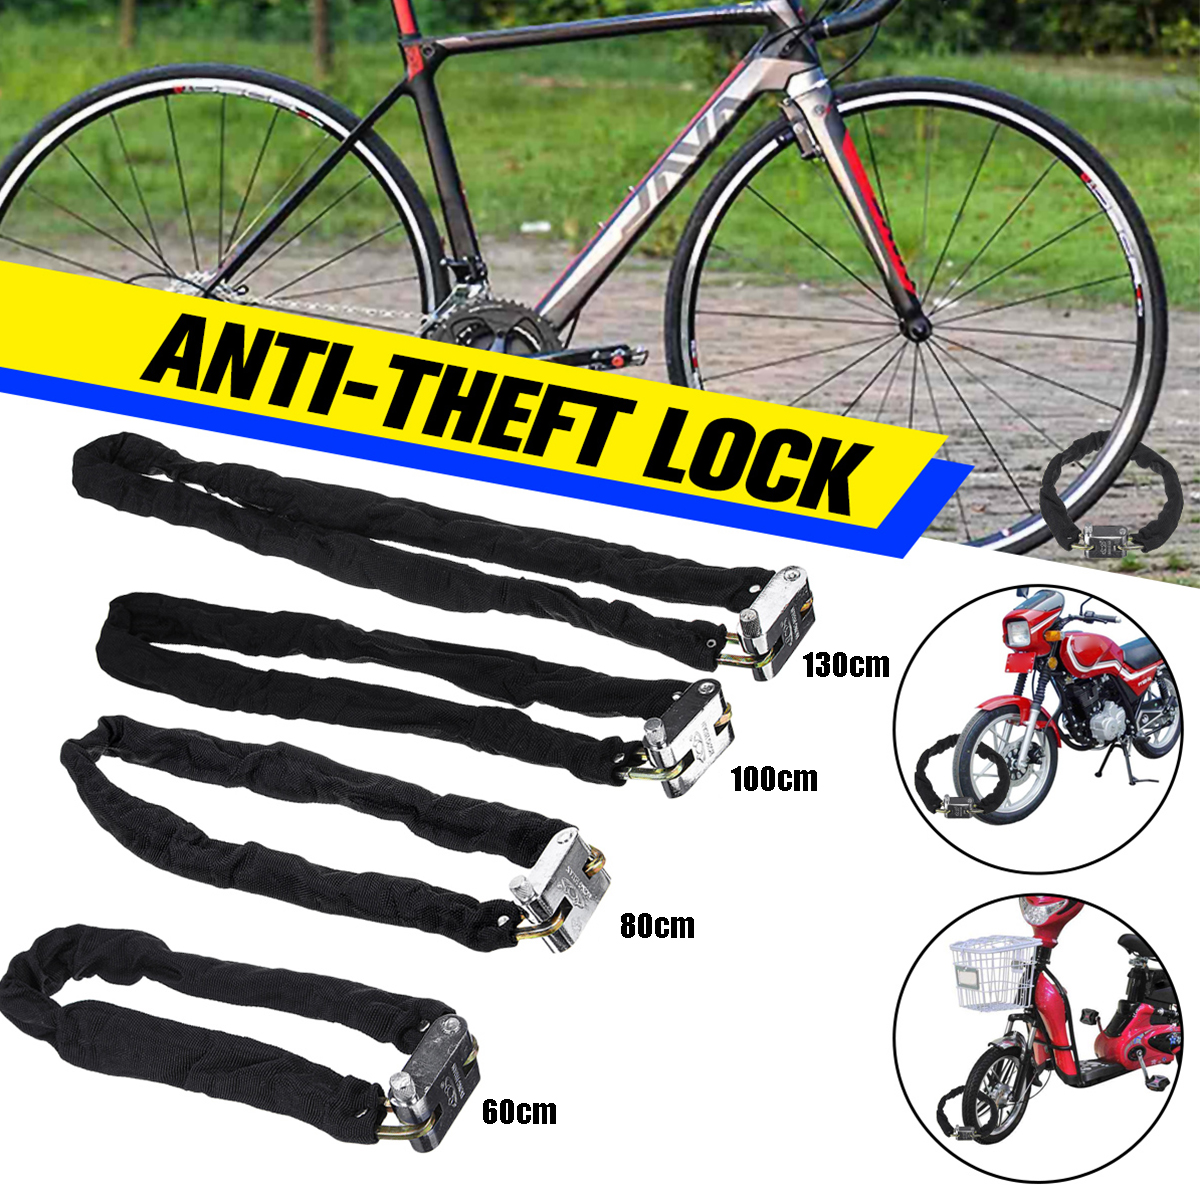 Cloth Covered Square Head Motorcycle Anti-Theft Lock Bicycle E-Bicycle Motorcycle Chain Lock Scooter Door Chain Lock Security